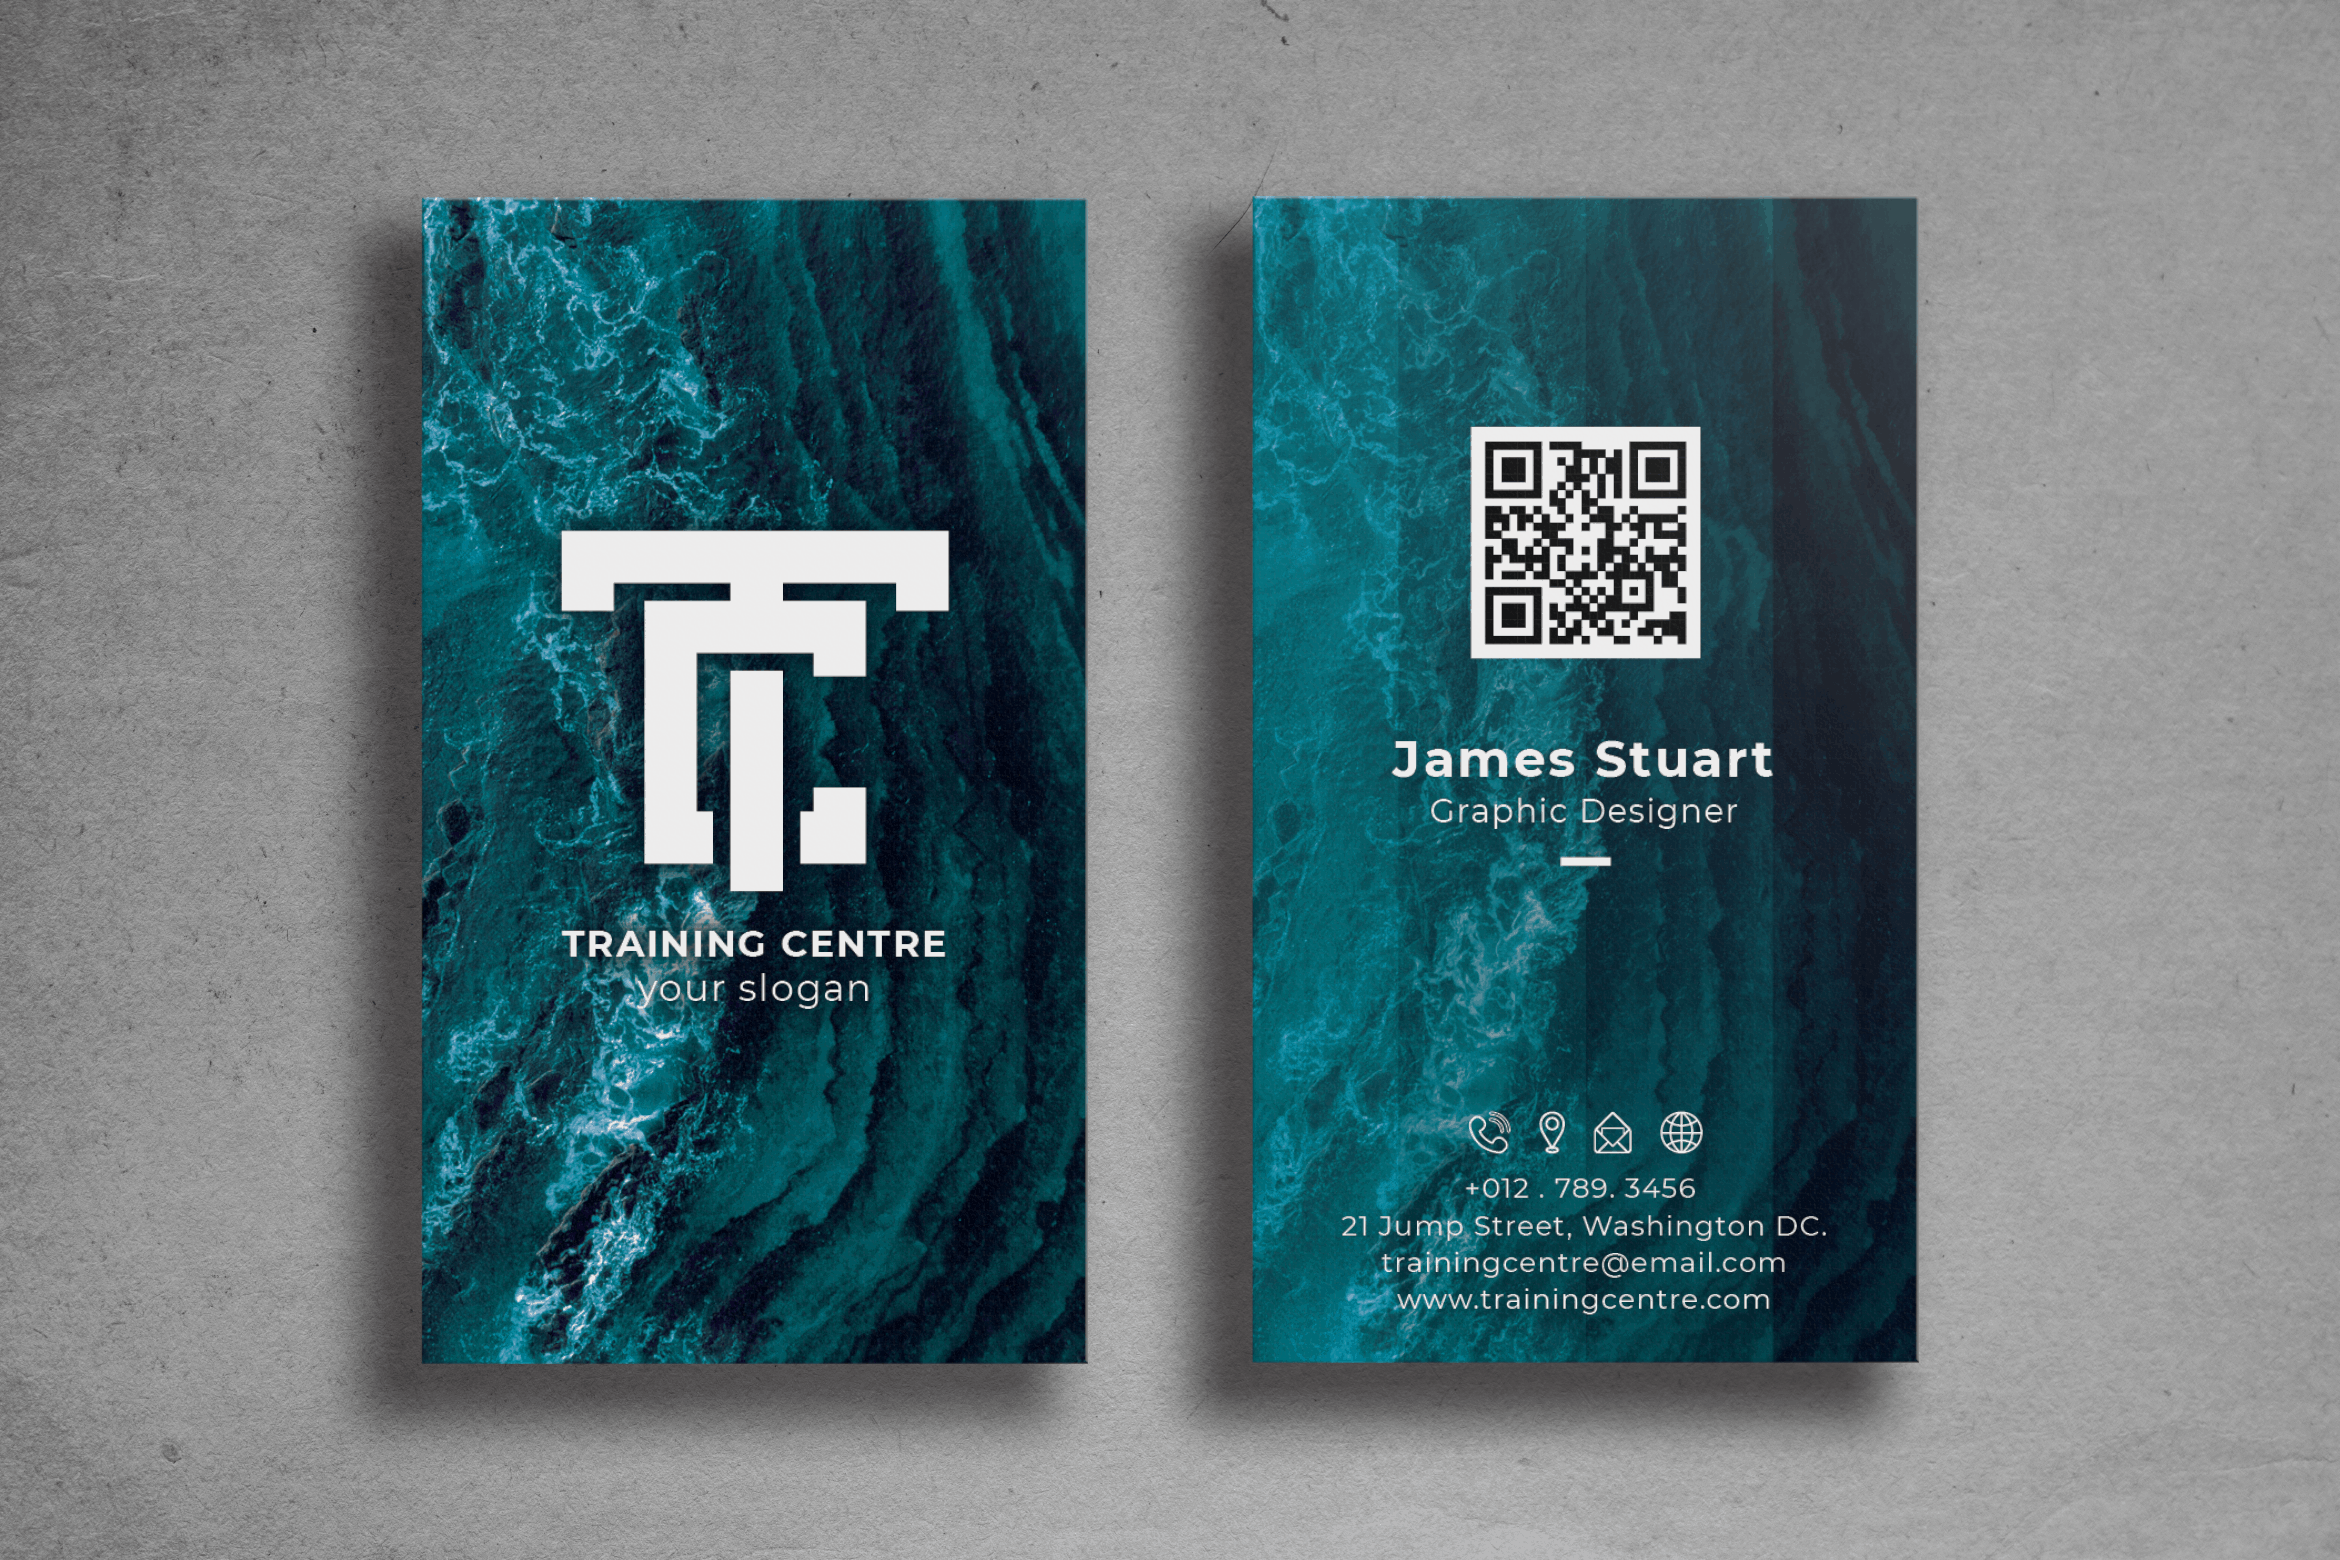 Business Card - Graphic Designer Profile